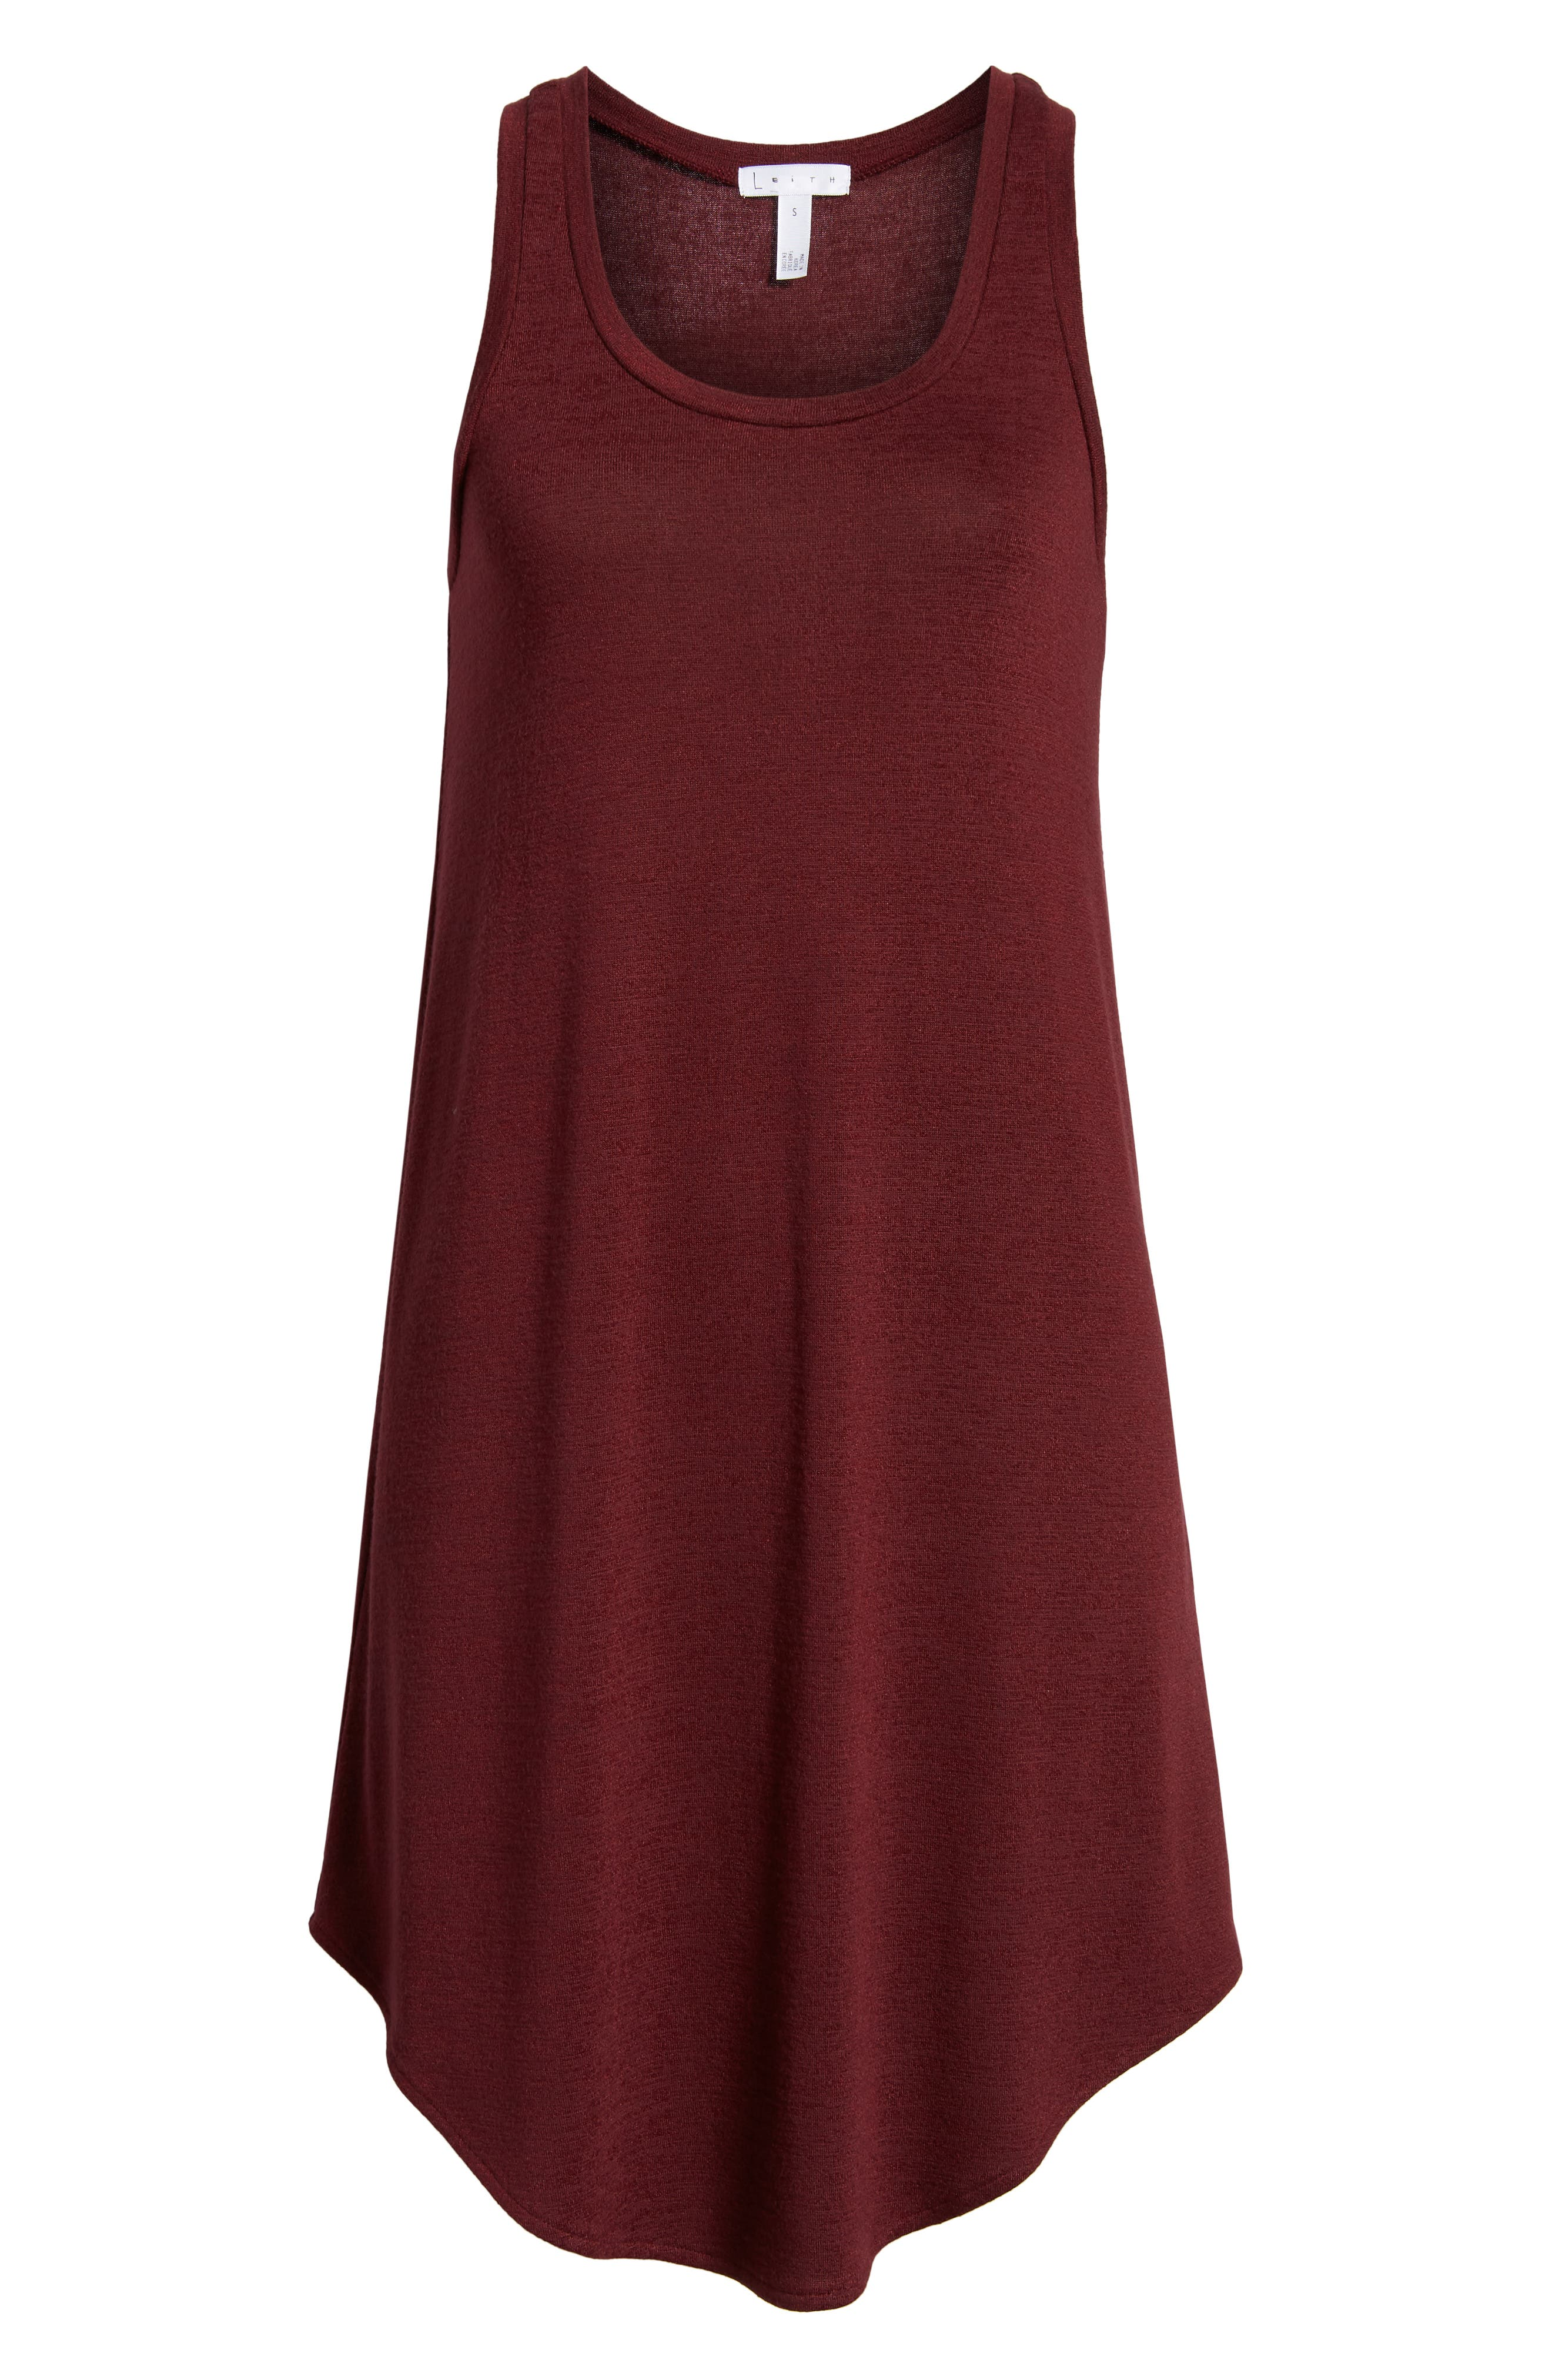 Tank Shift Dress,                             Alternate thumbnail 6, color,                             Red Tannin